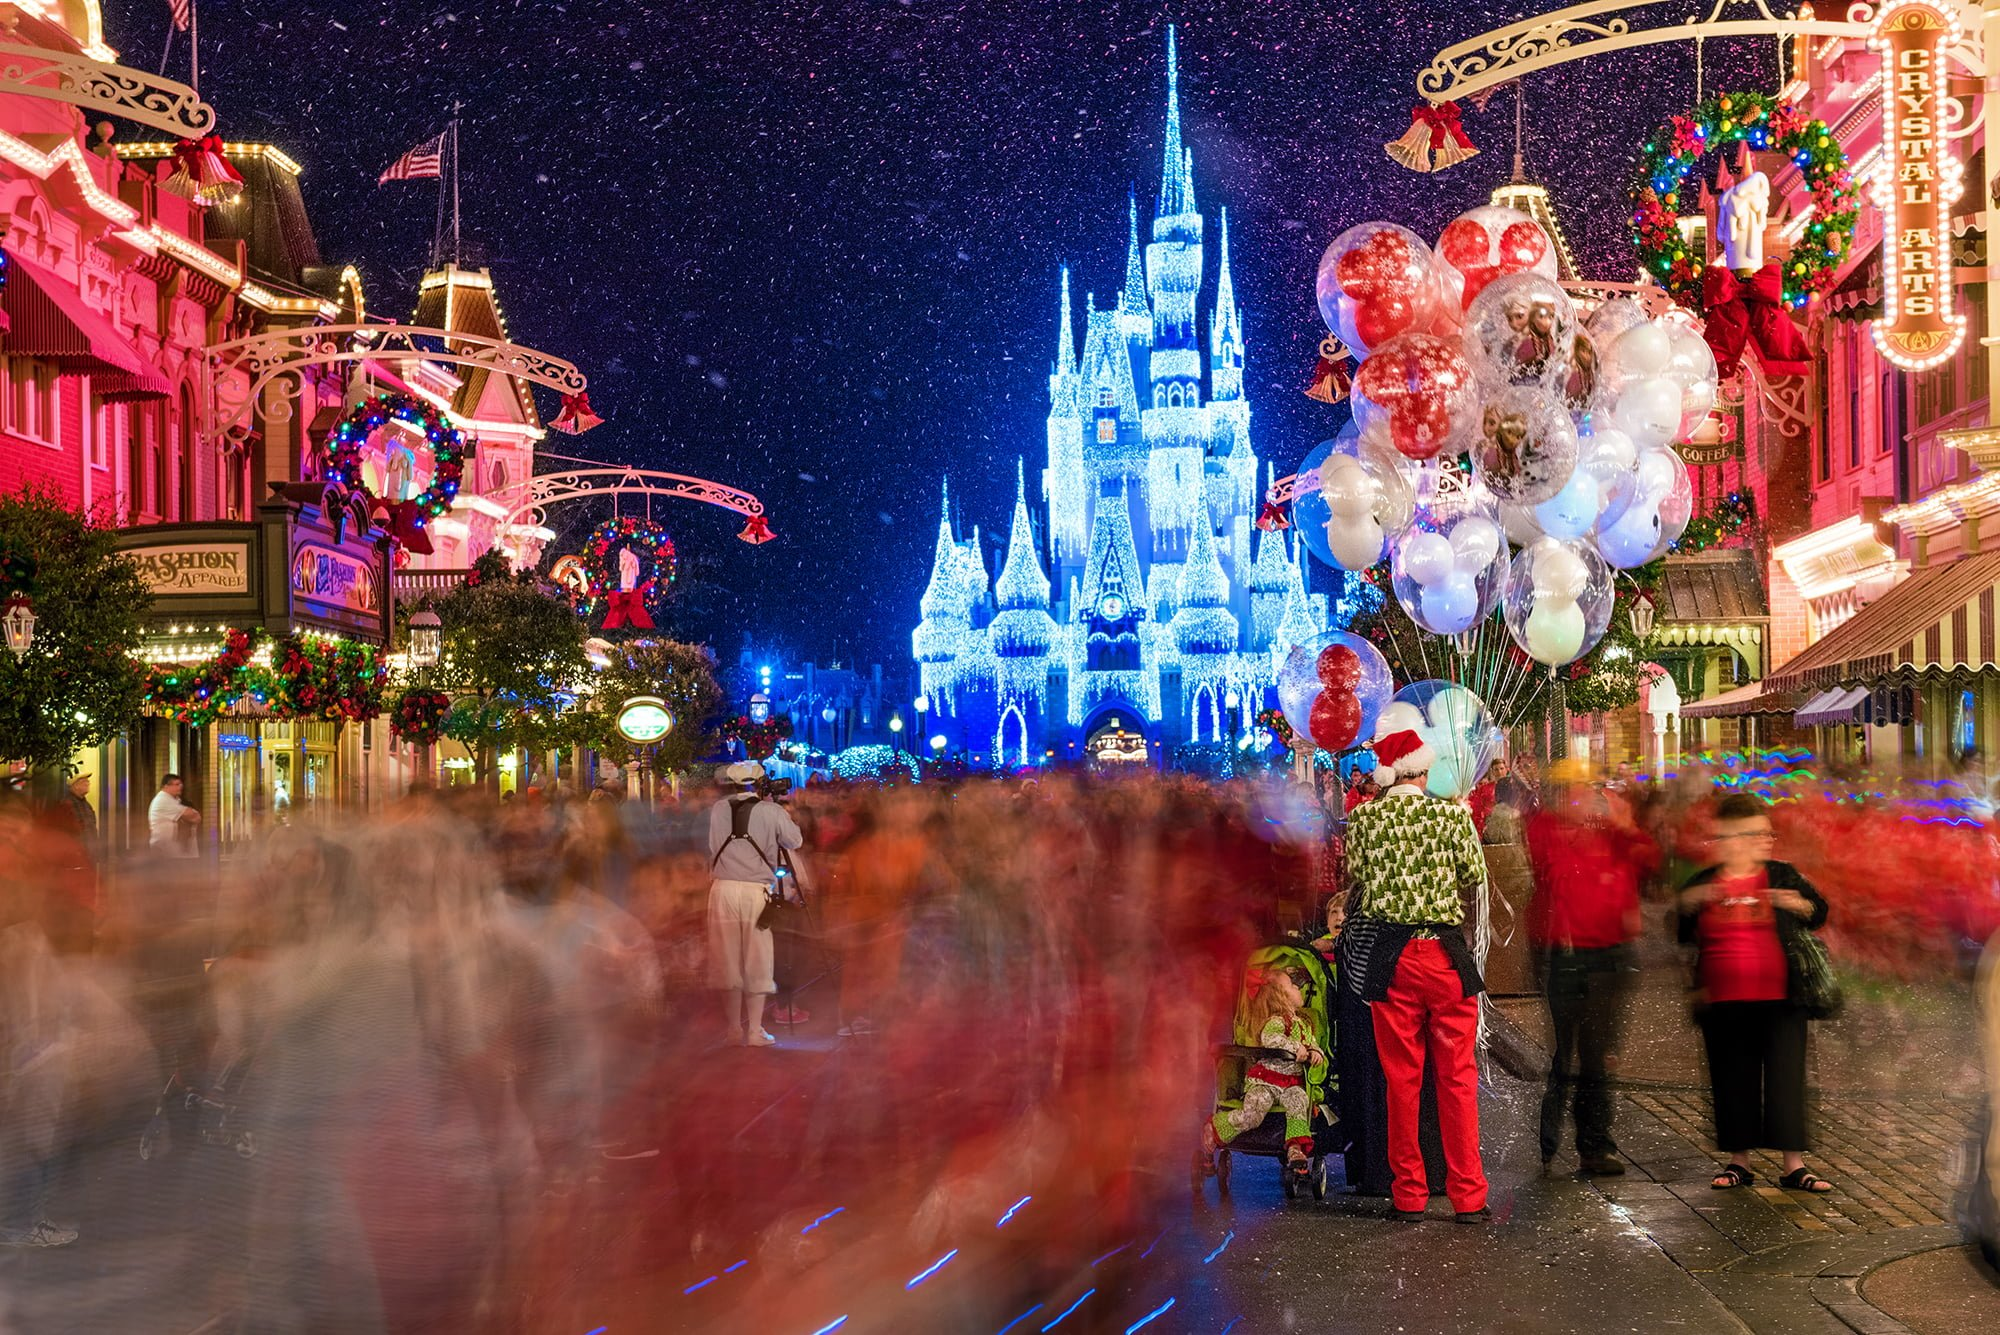 magic kingdom - When Does Disneyworld Decorate For Christmas